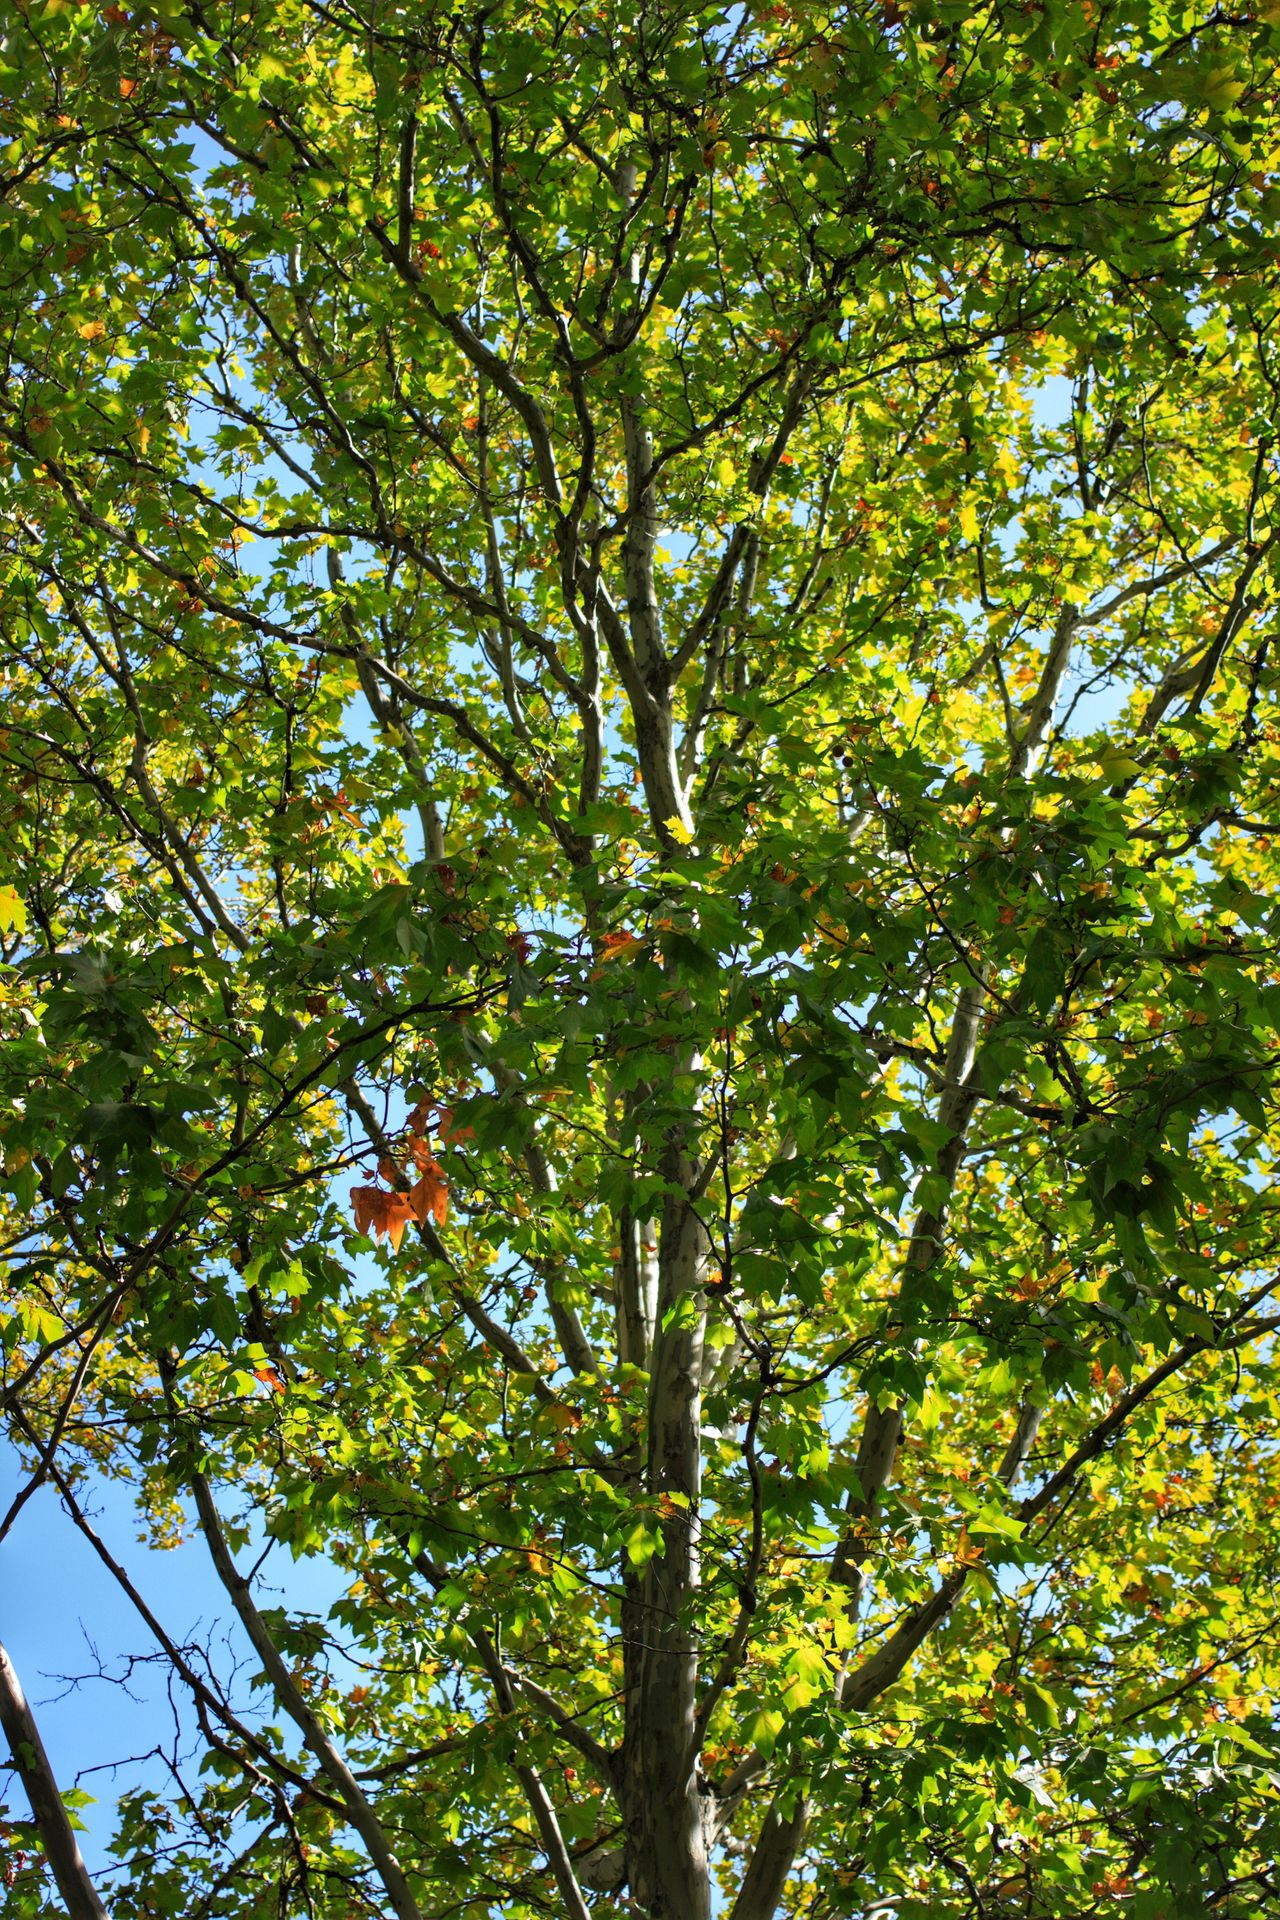 Tree Nature Growth Low Angle View Green Color Beauty In Nature Branch Leaf Autumn Colors Autumn Leaves Autumn Autumn Collection Autumn🍁🍁🍁 Autumn Trees Autumn Leafs Autumn Colours Tree Tops Tree Tops And The Sky Tree Top Top Of Trees Green Leaves First Autumn Leaves Green Leaves. Green Leaves Blue Sky Trees